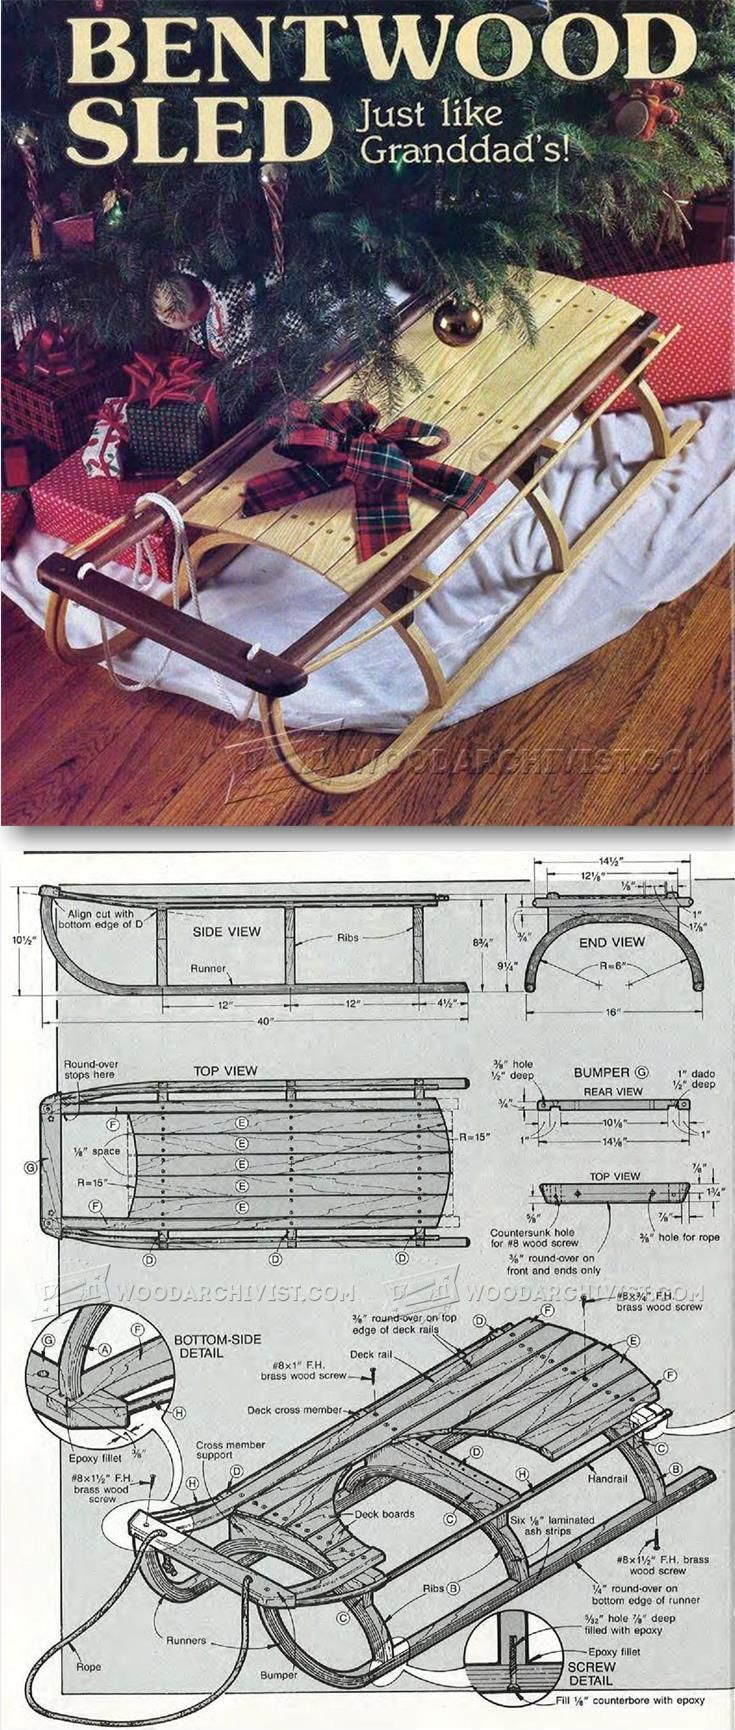 Bentwood Sleigh Plans - Children's Outdoor Plans and Projects | WoodArchivist.com